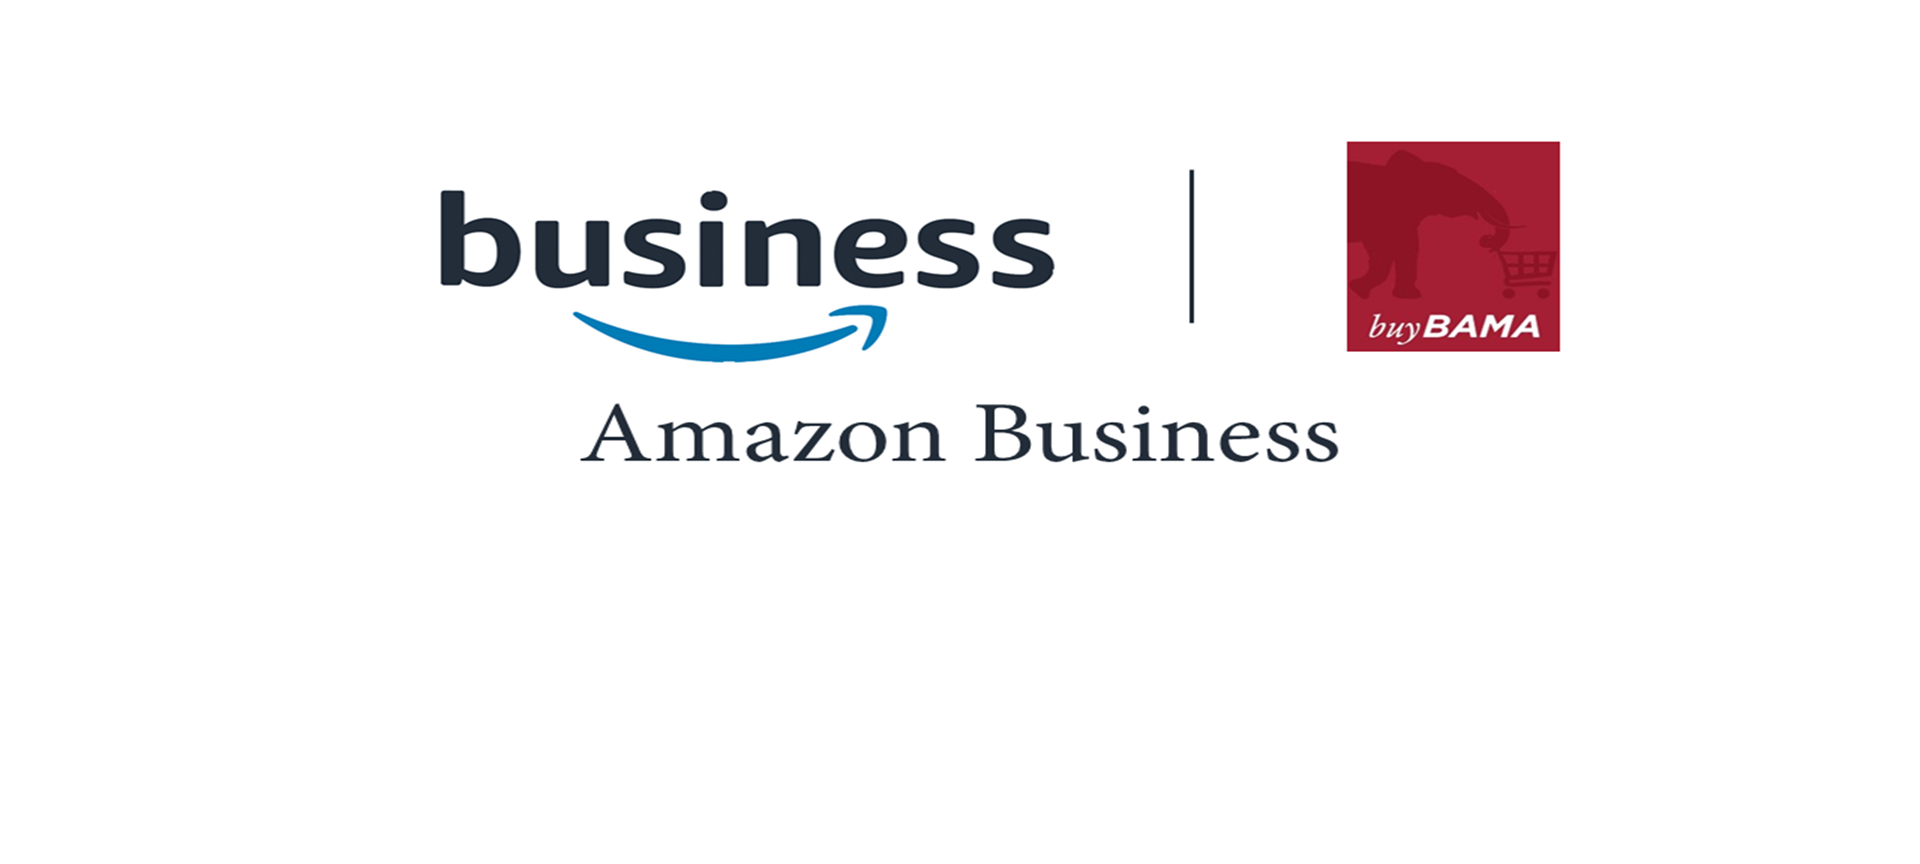 Amazon Business catalog on buyBAMA is now available!